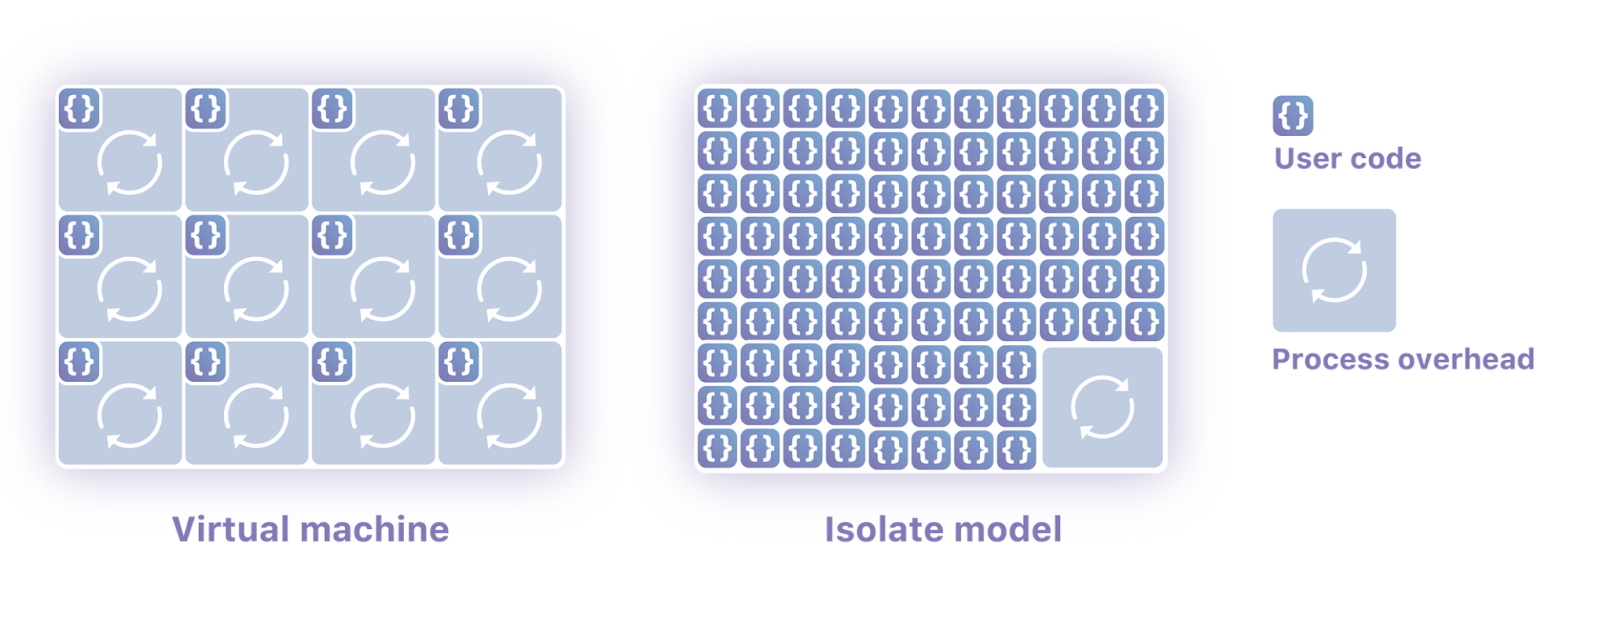 Diagram comparing a virtual machine with the Isolate model